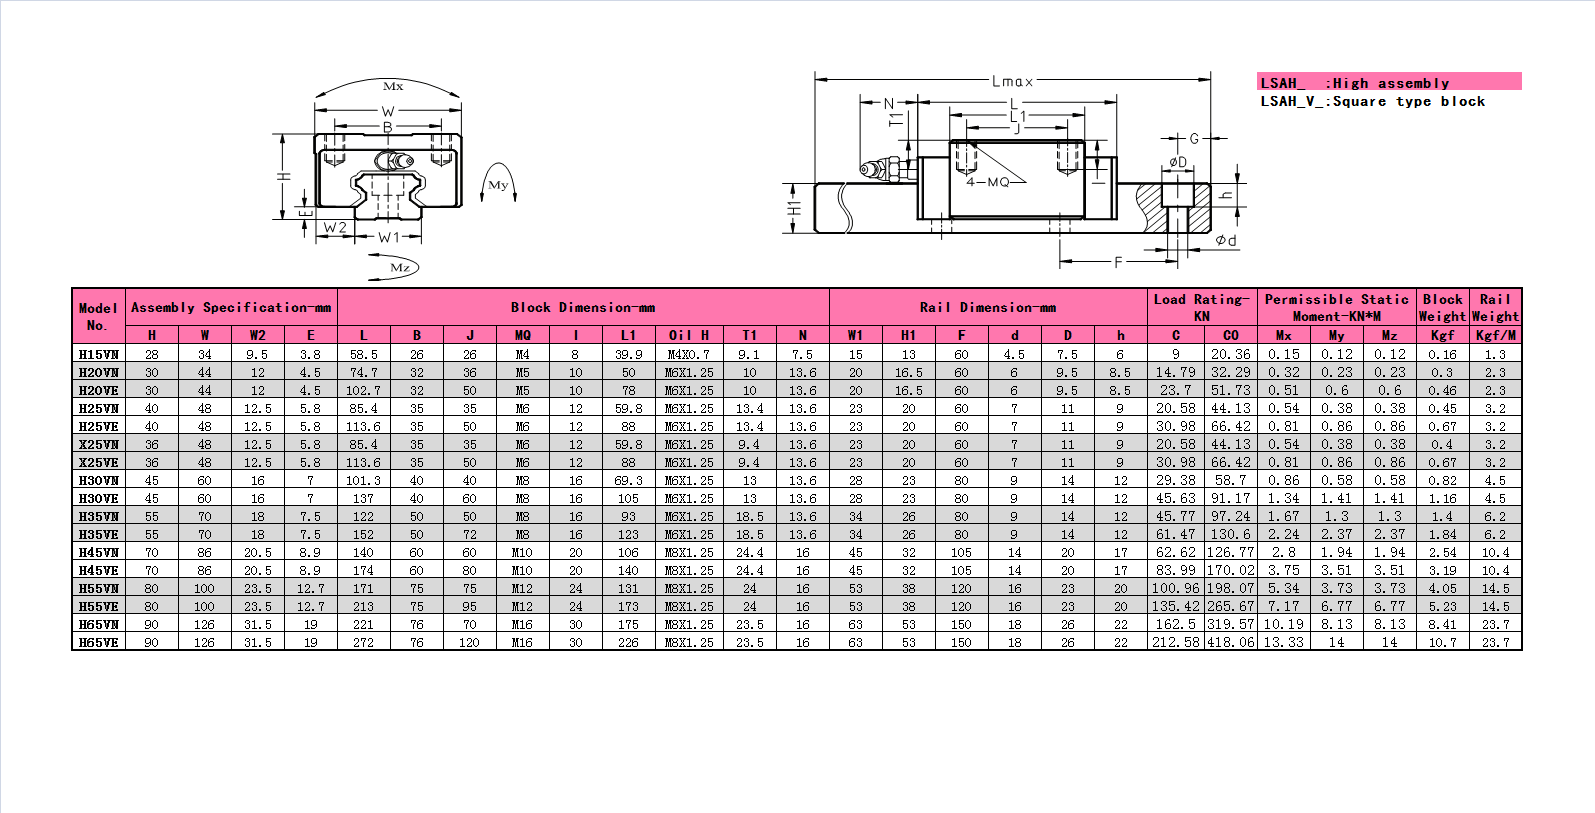 LSAH LSAH-V Size specification 2